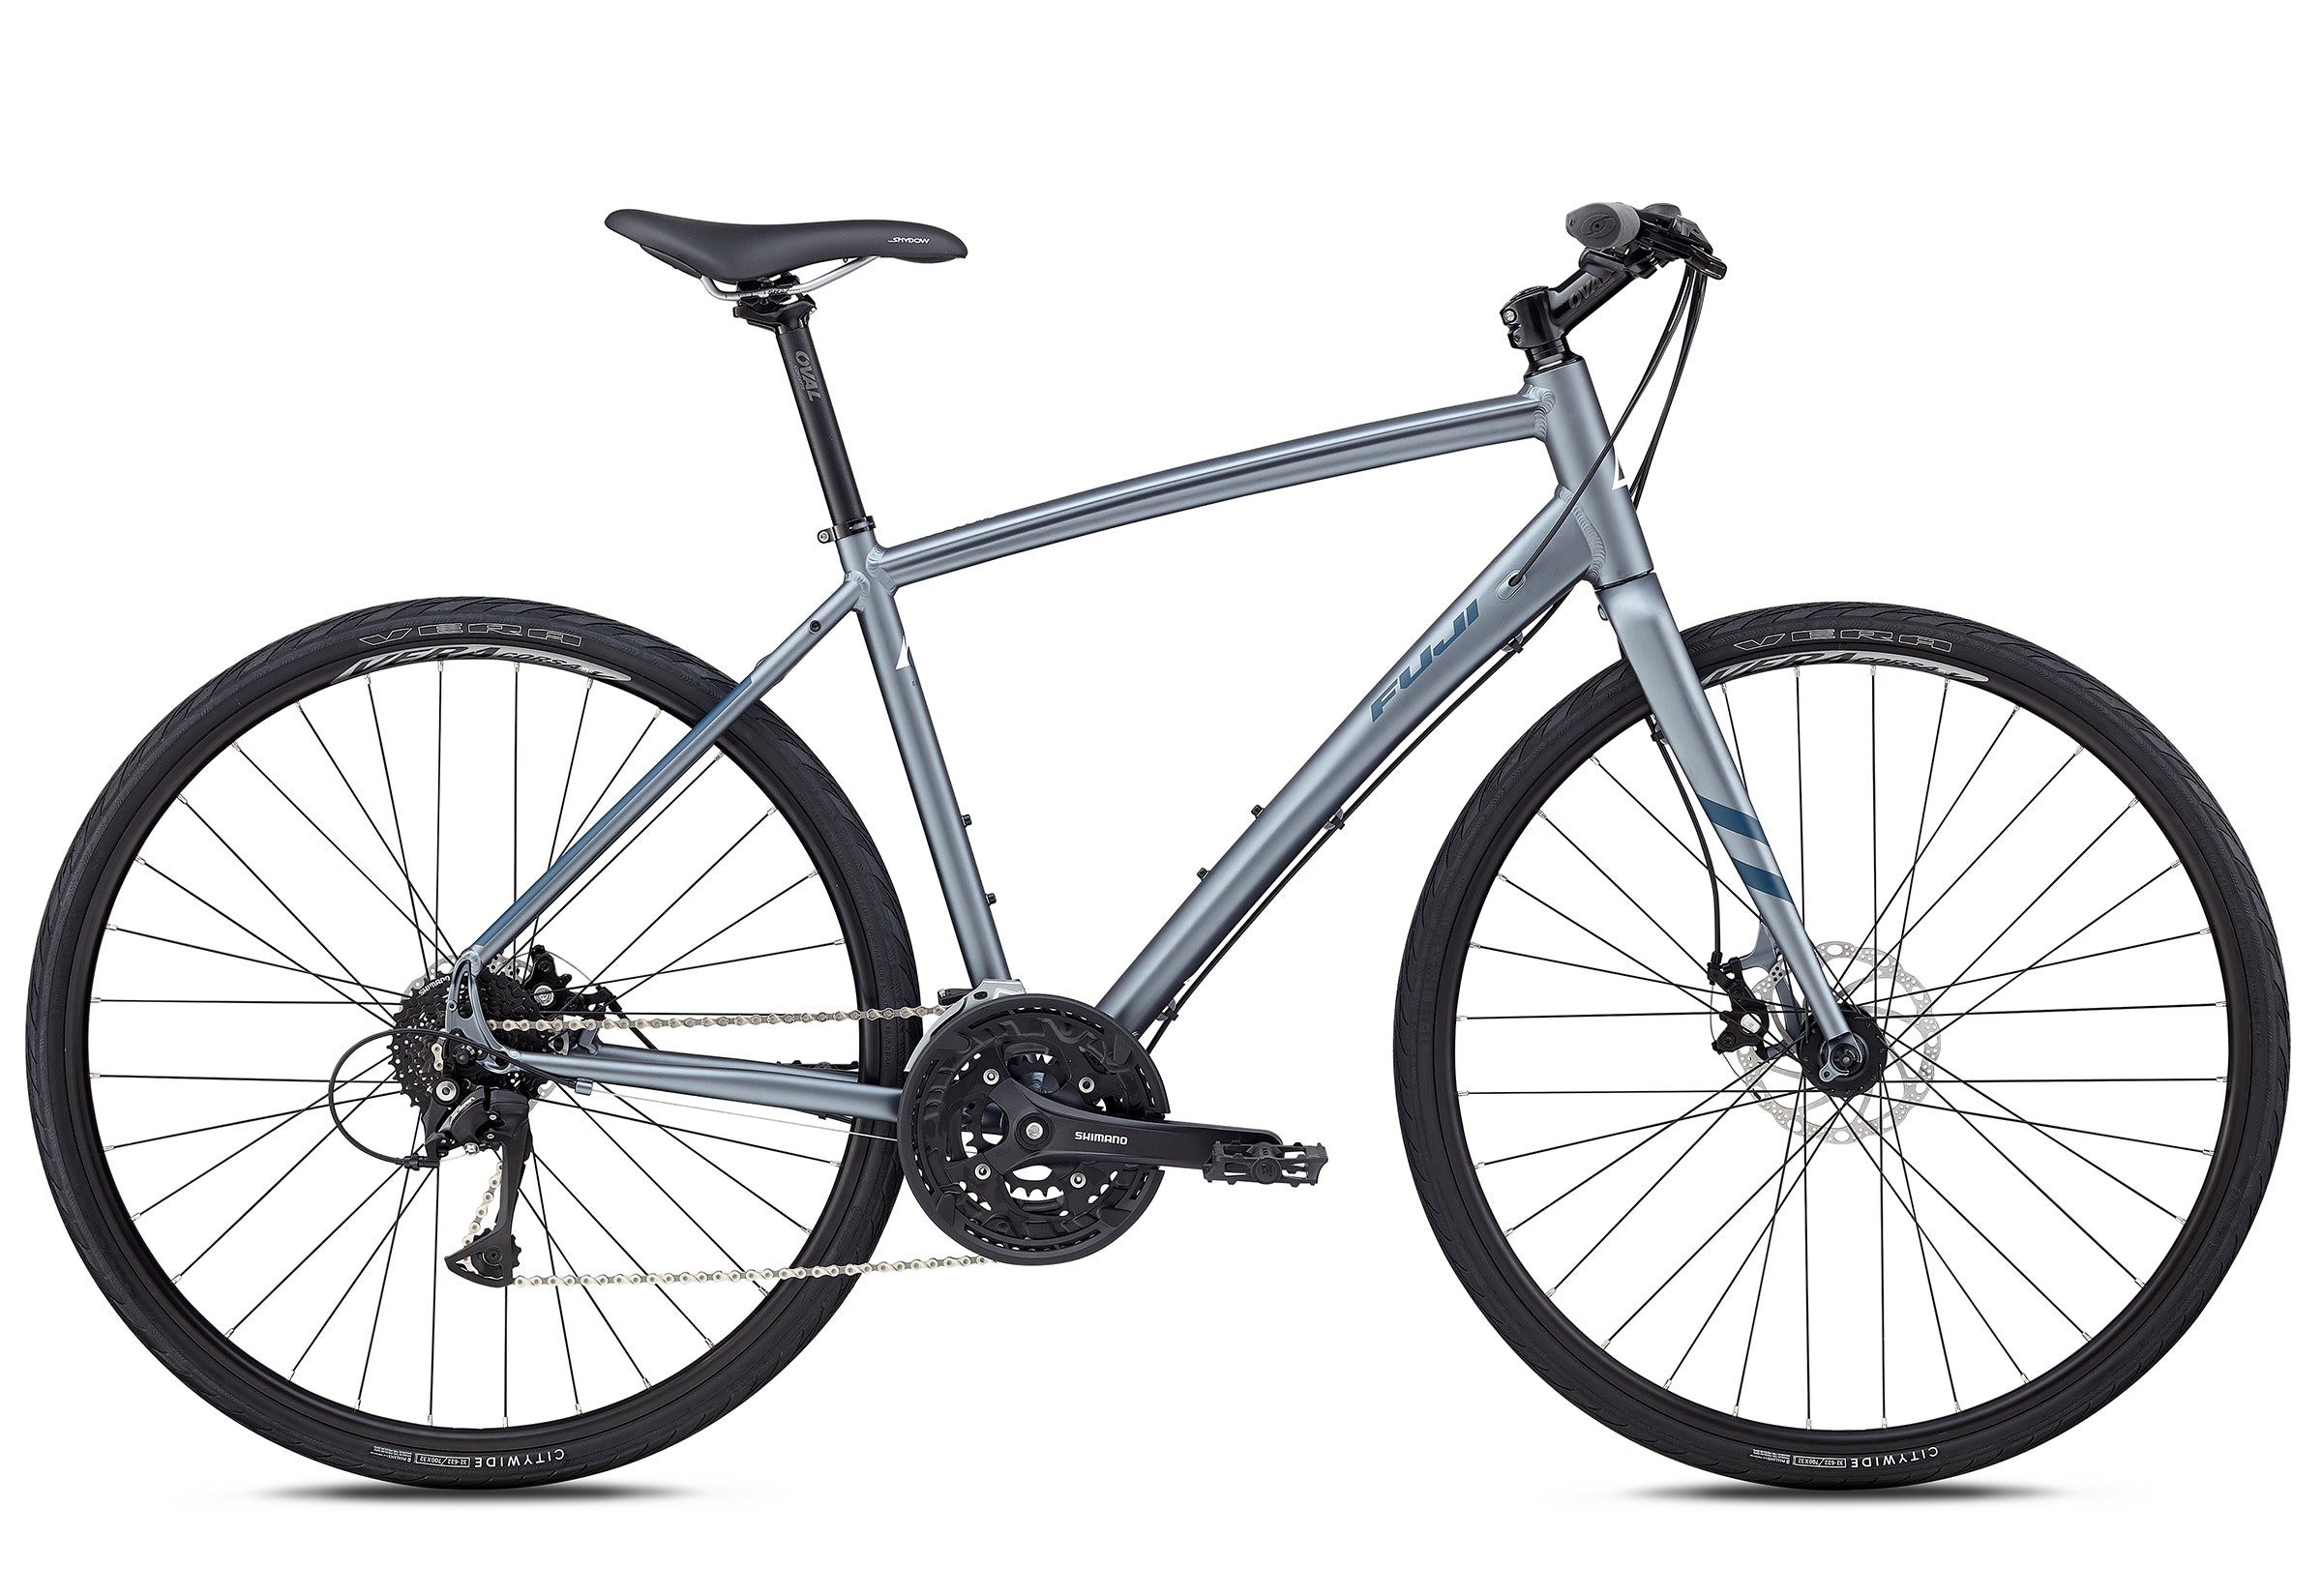 2018 Fuji Absolute 1 7 Disc Commuter Fitness The